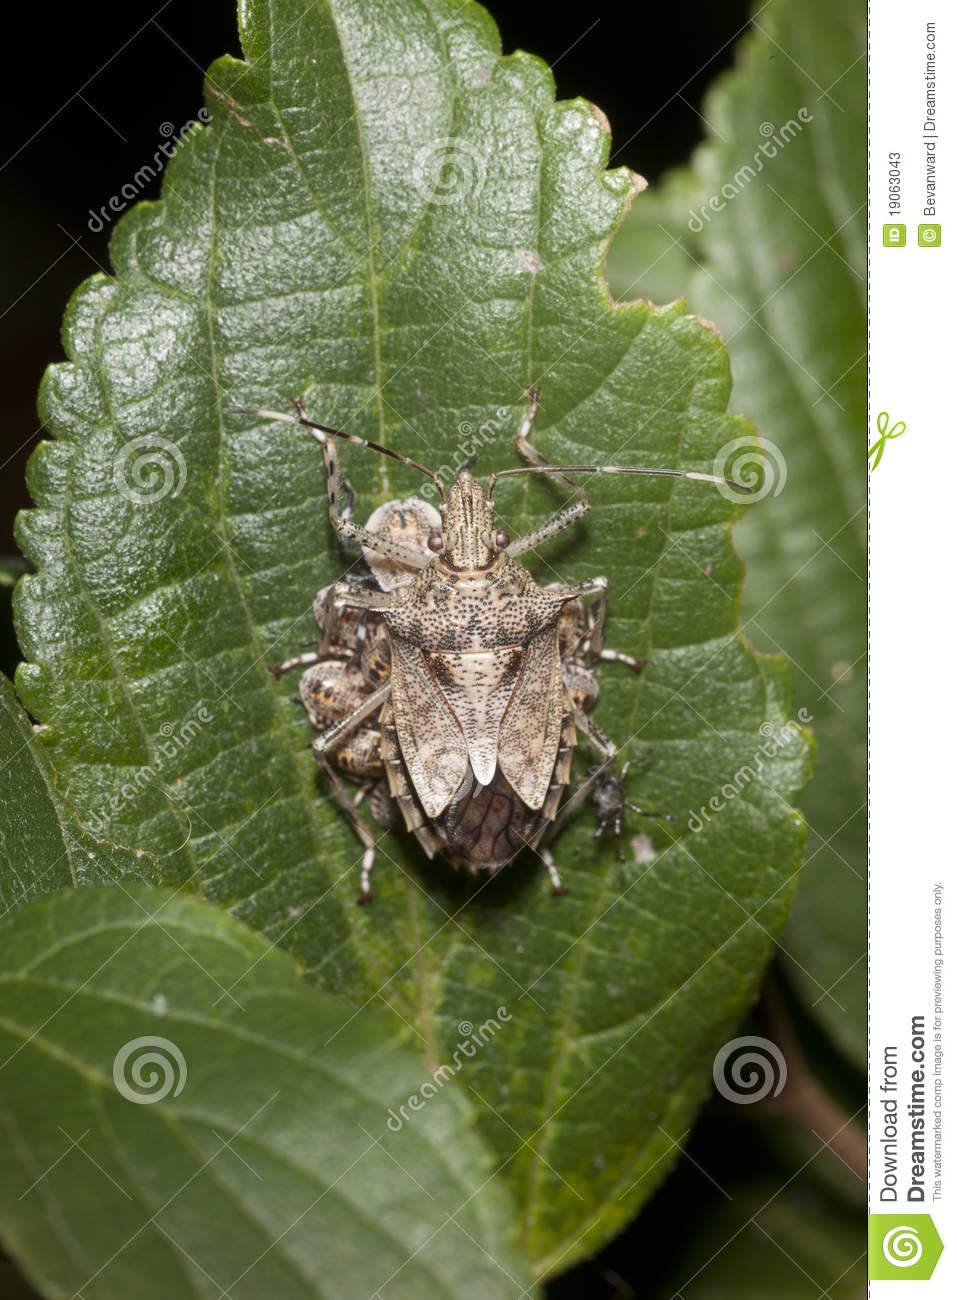 Stink Bug With Babies Stock Image Image Of Babies